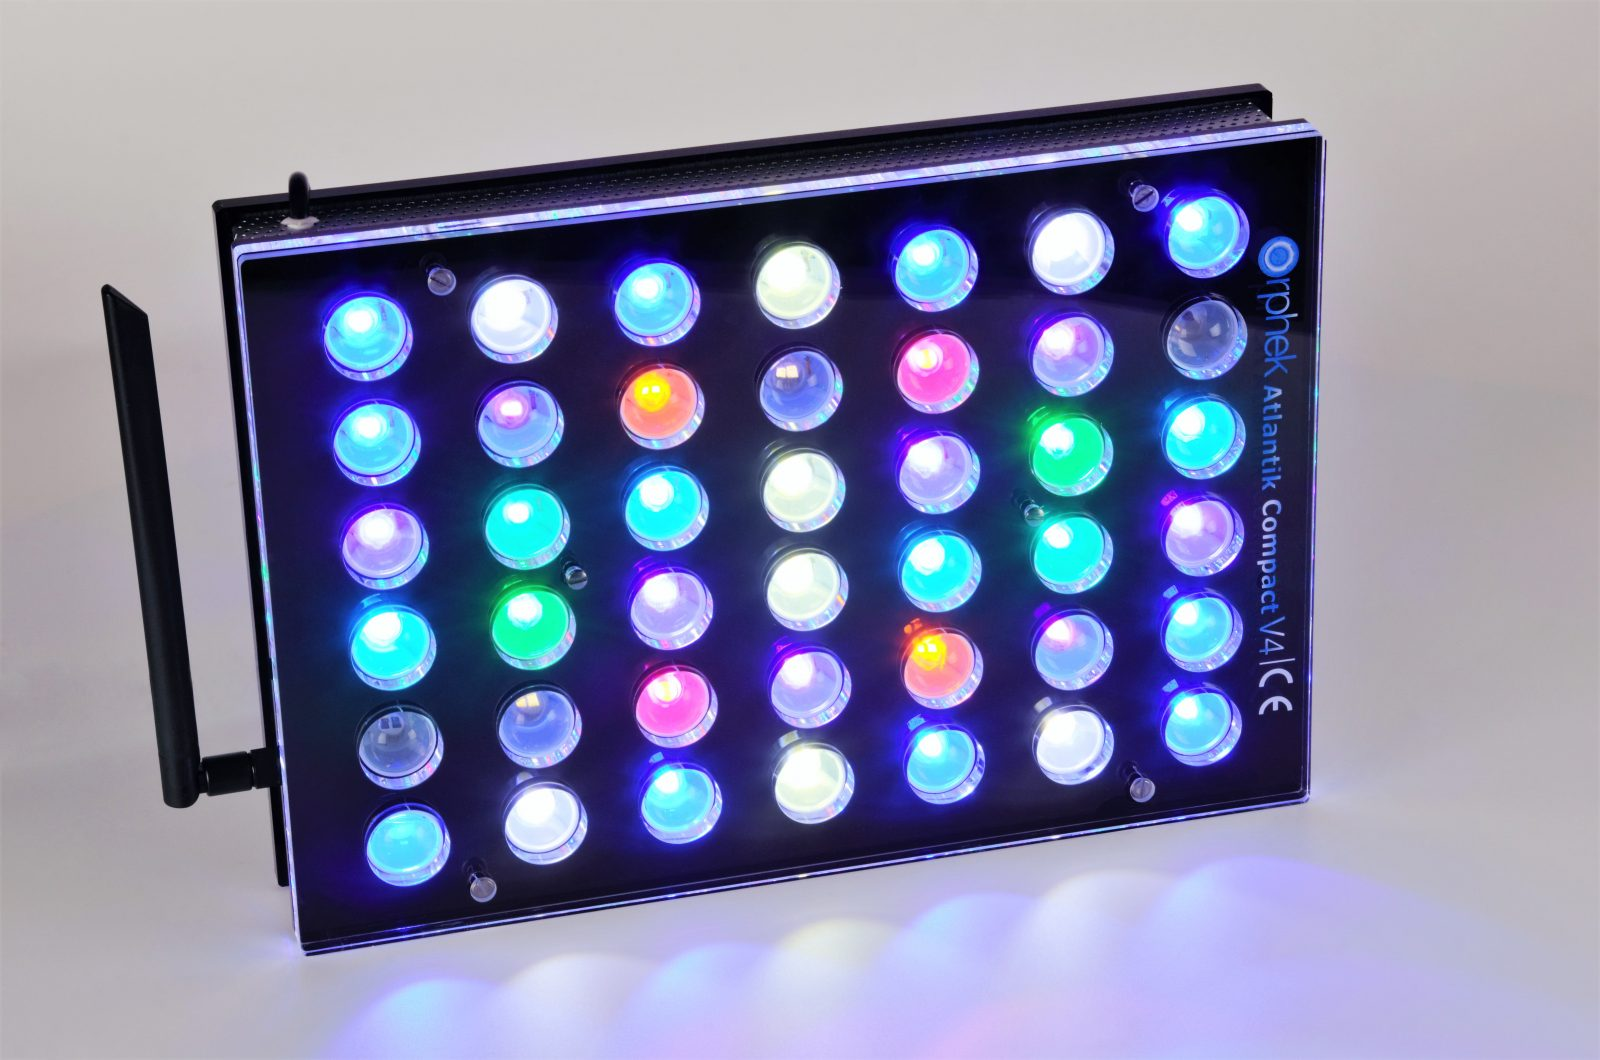 Orphek-Aquarium-Iluminación-LED-Atlantik -Compact-V4-light-on-channel 1 + 2 + 3 + 4